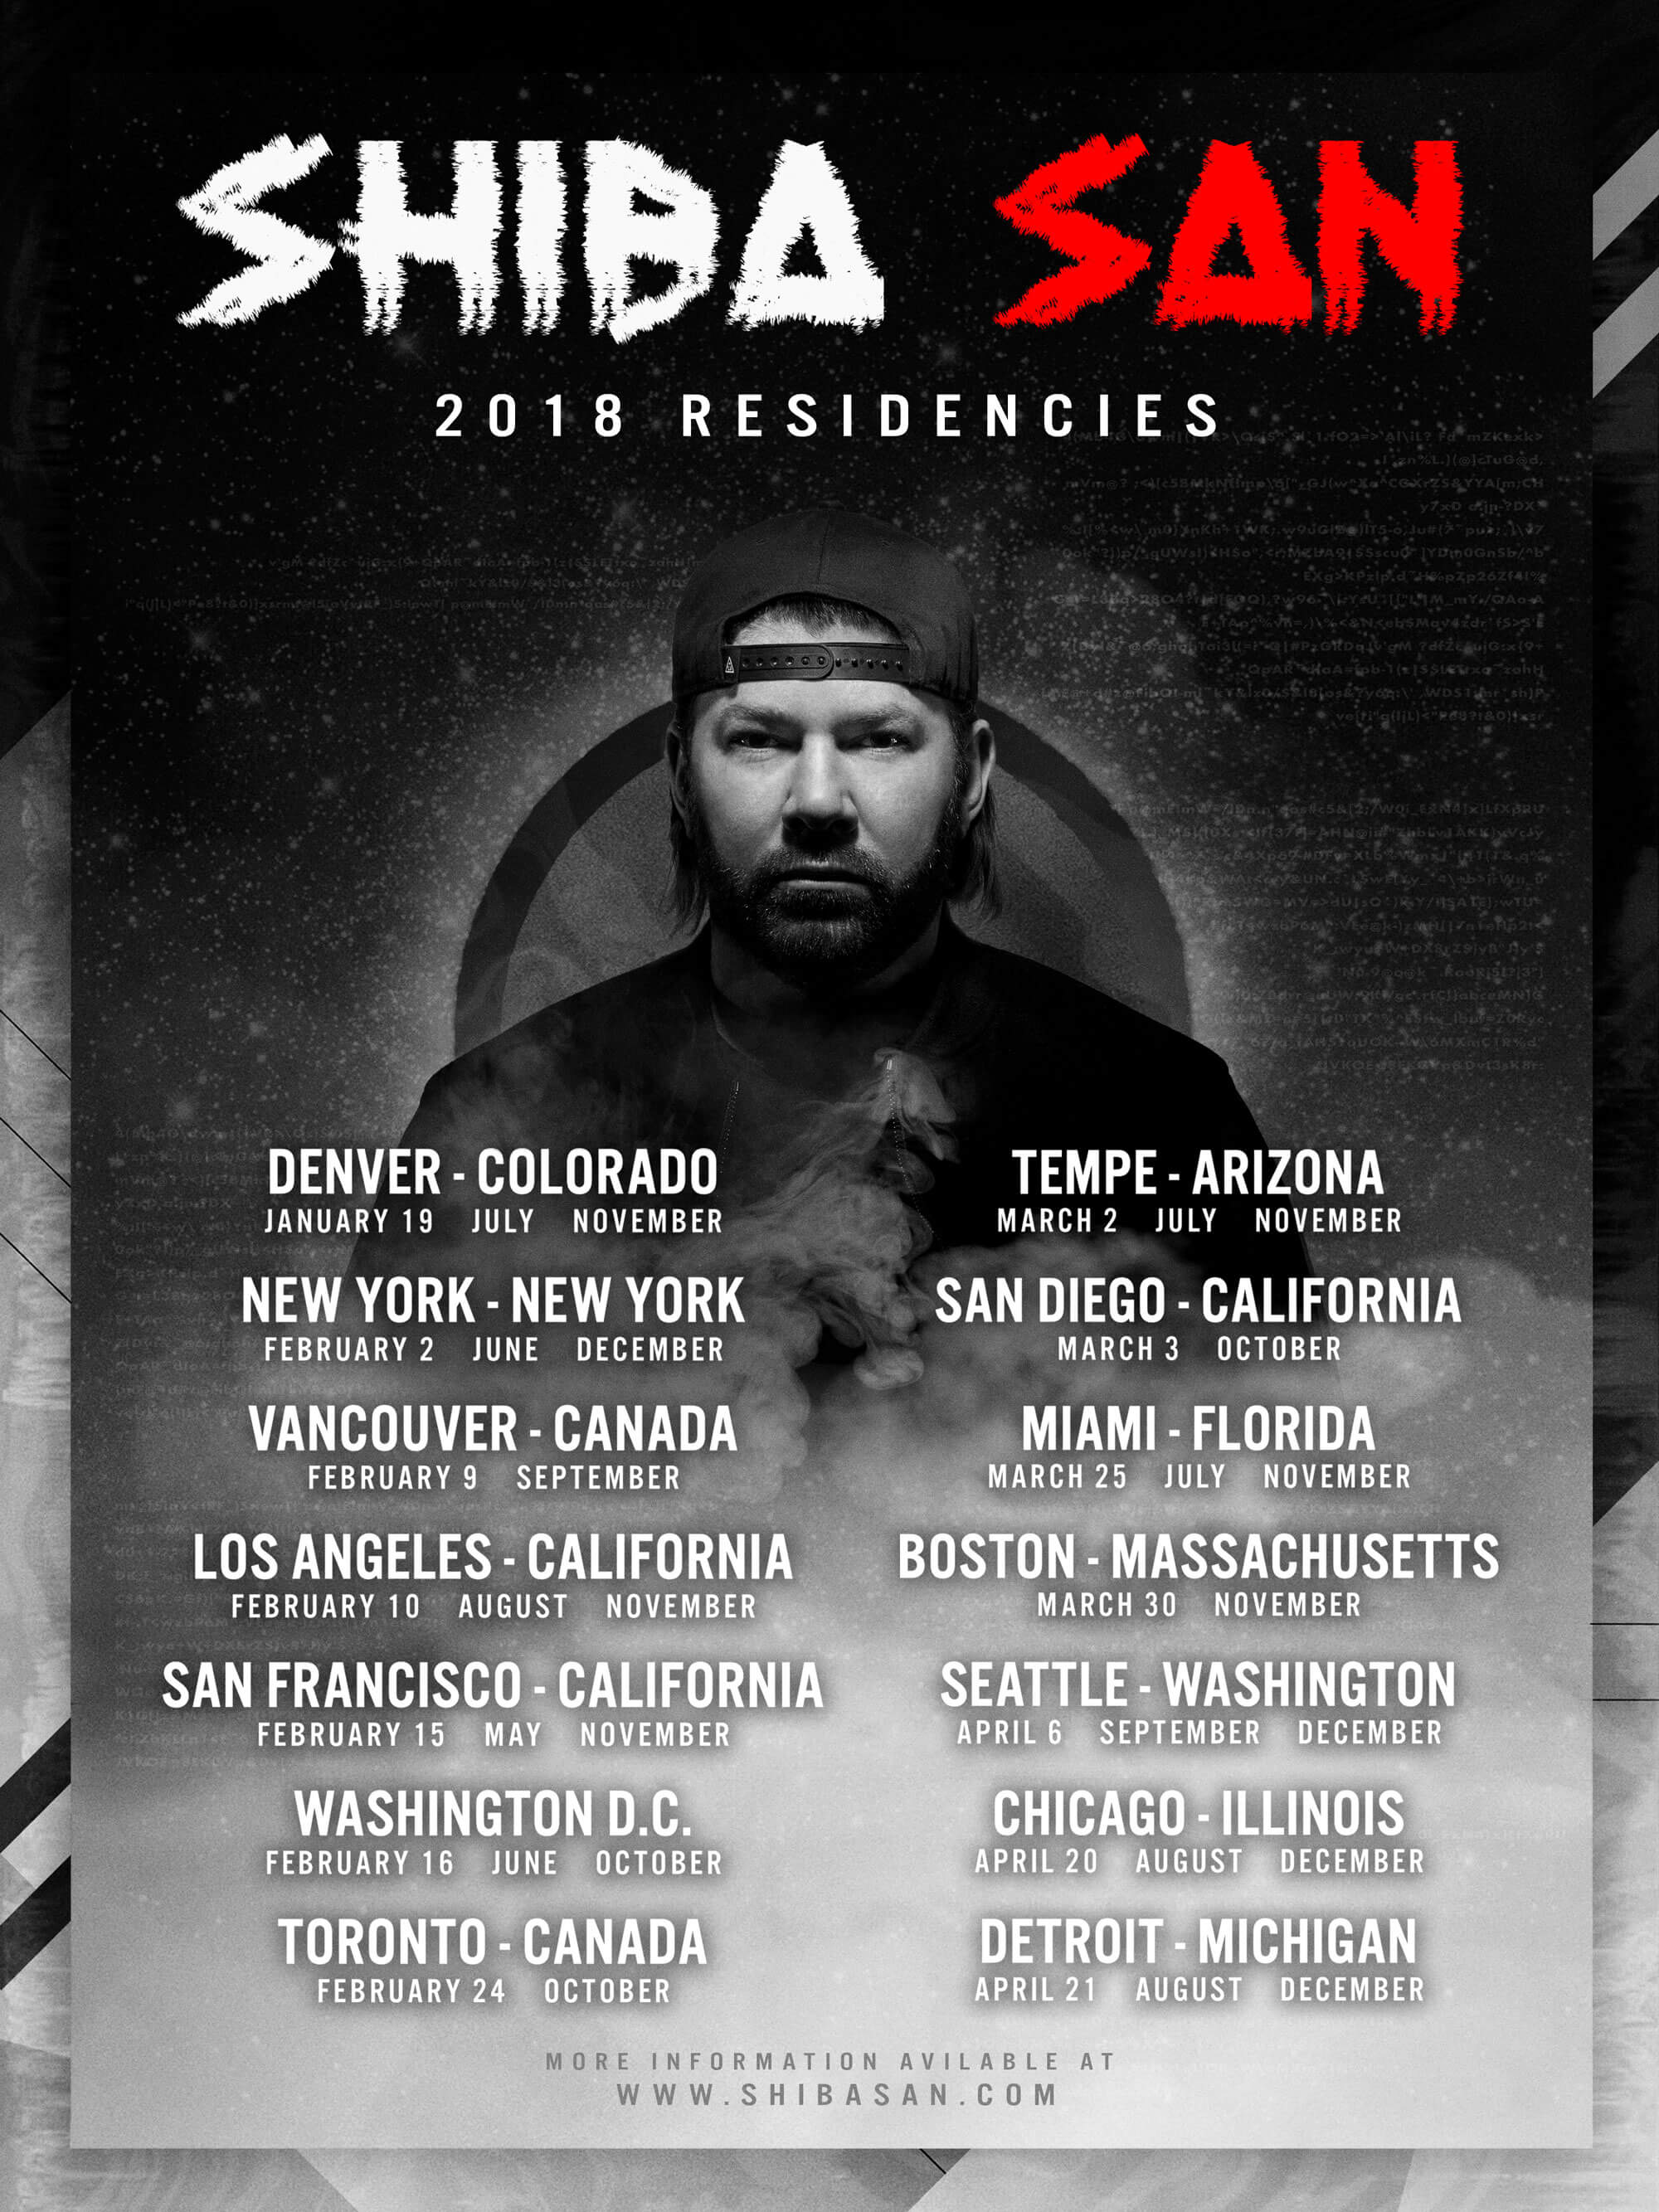 2018 Residencies:   Denver  – The Church / January 19th / July / November   New York  – Output / February 2nd / June / December   Vancouver  – Celebrities Nightclub / February 9th / September   Los Angeles  – Exchange LA / February 10th / August / November   San Francisco  – 1015 Folsom / February 15th / May / November   Washington DC  – Soundcheck / February 16th / June / October   Toronto  – Noir / February 24th / October   Tempe  – Shady Park / March 2nd / July / November   San Diego  – Bang Bang  / March 3rd / October   Miami  – Basement Leak Showcase / March 25th / July / November   Boston  – Bijou Nightclub / March 30th / November   Seattle  – Q Nightclub / Apr 6th / September / December   Chicago  – The Mid / April 20th / August / December   Detroit  – Magic Stick / April 21st / August / December